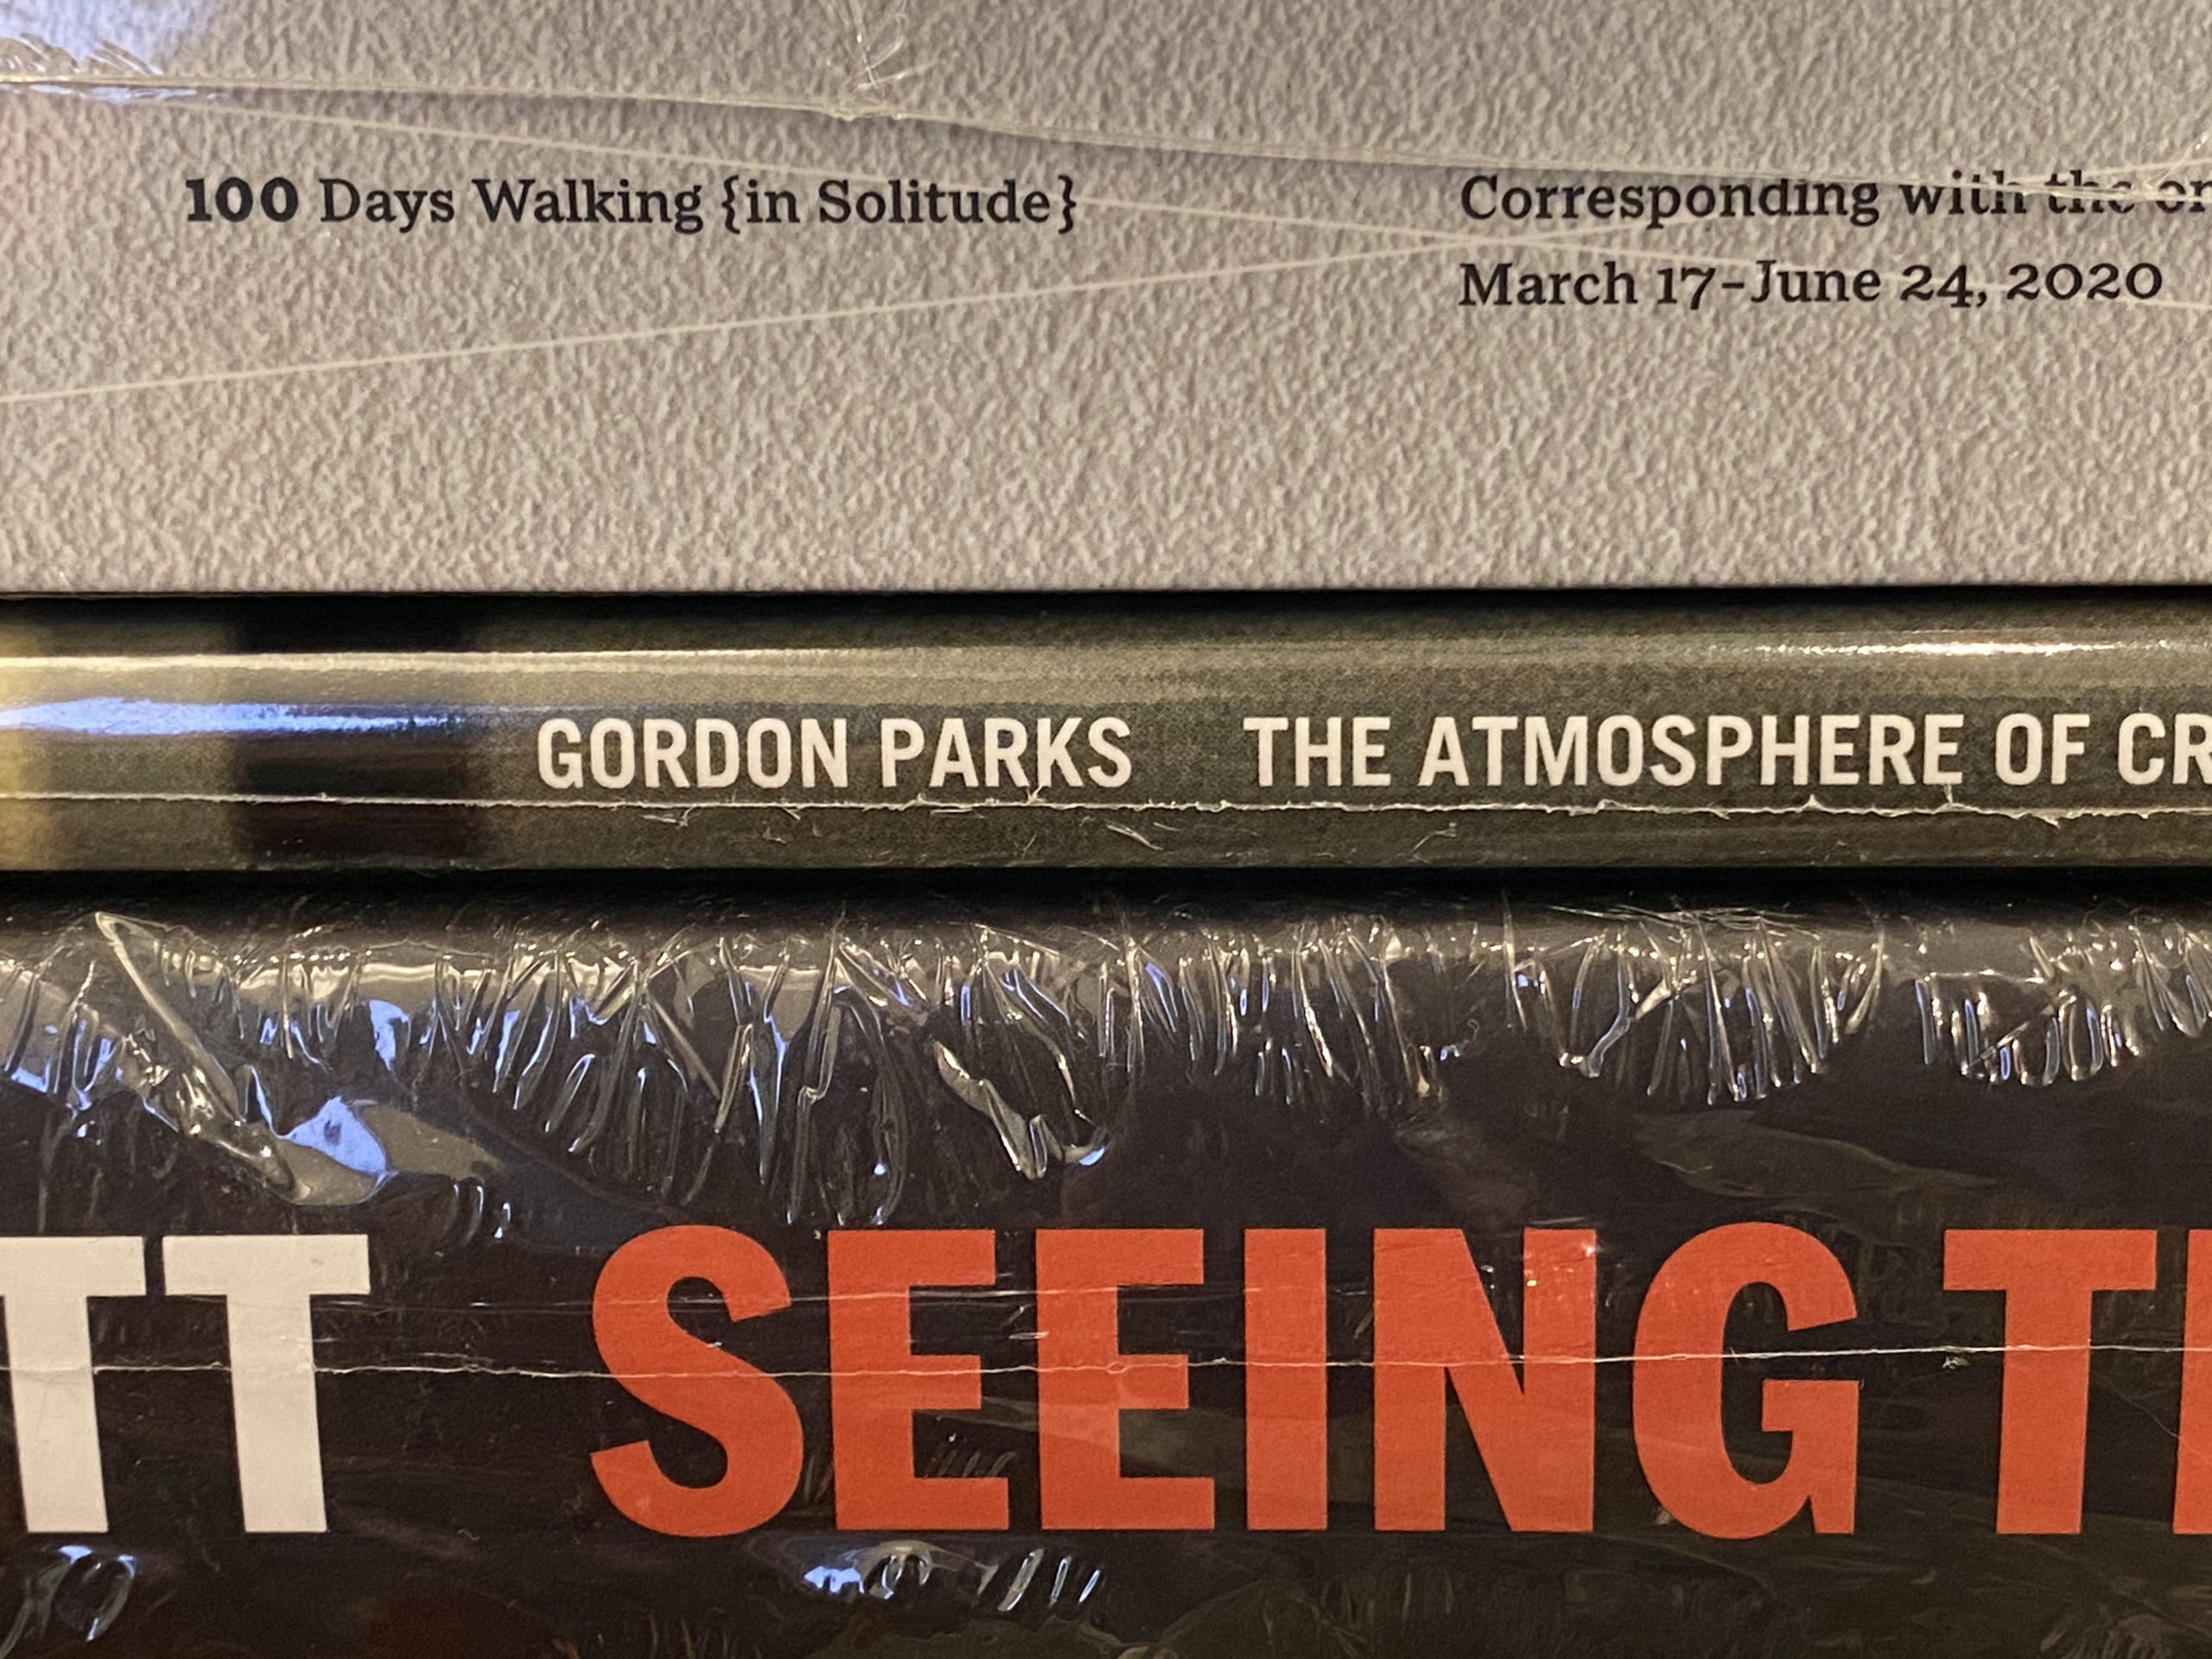 Books On My Desk: Klett, Parks, and Aufuldish